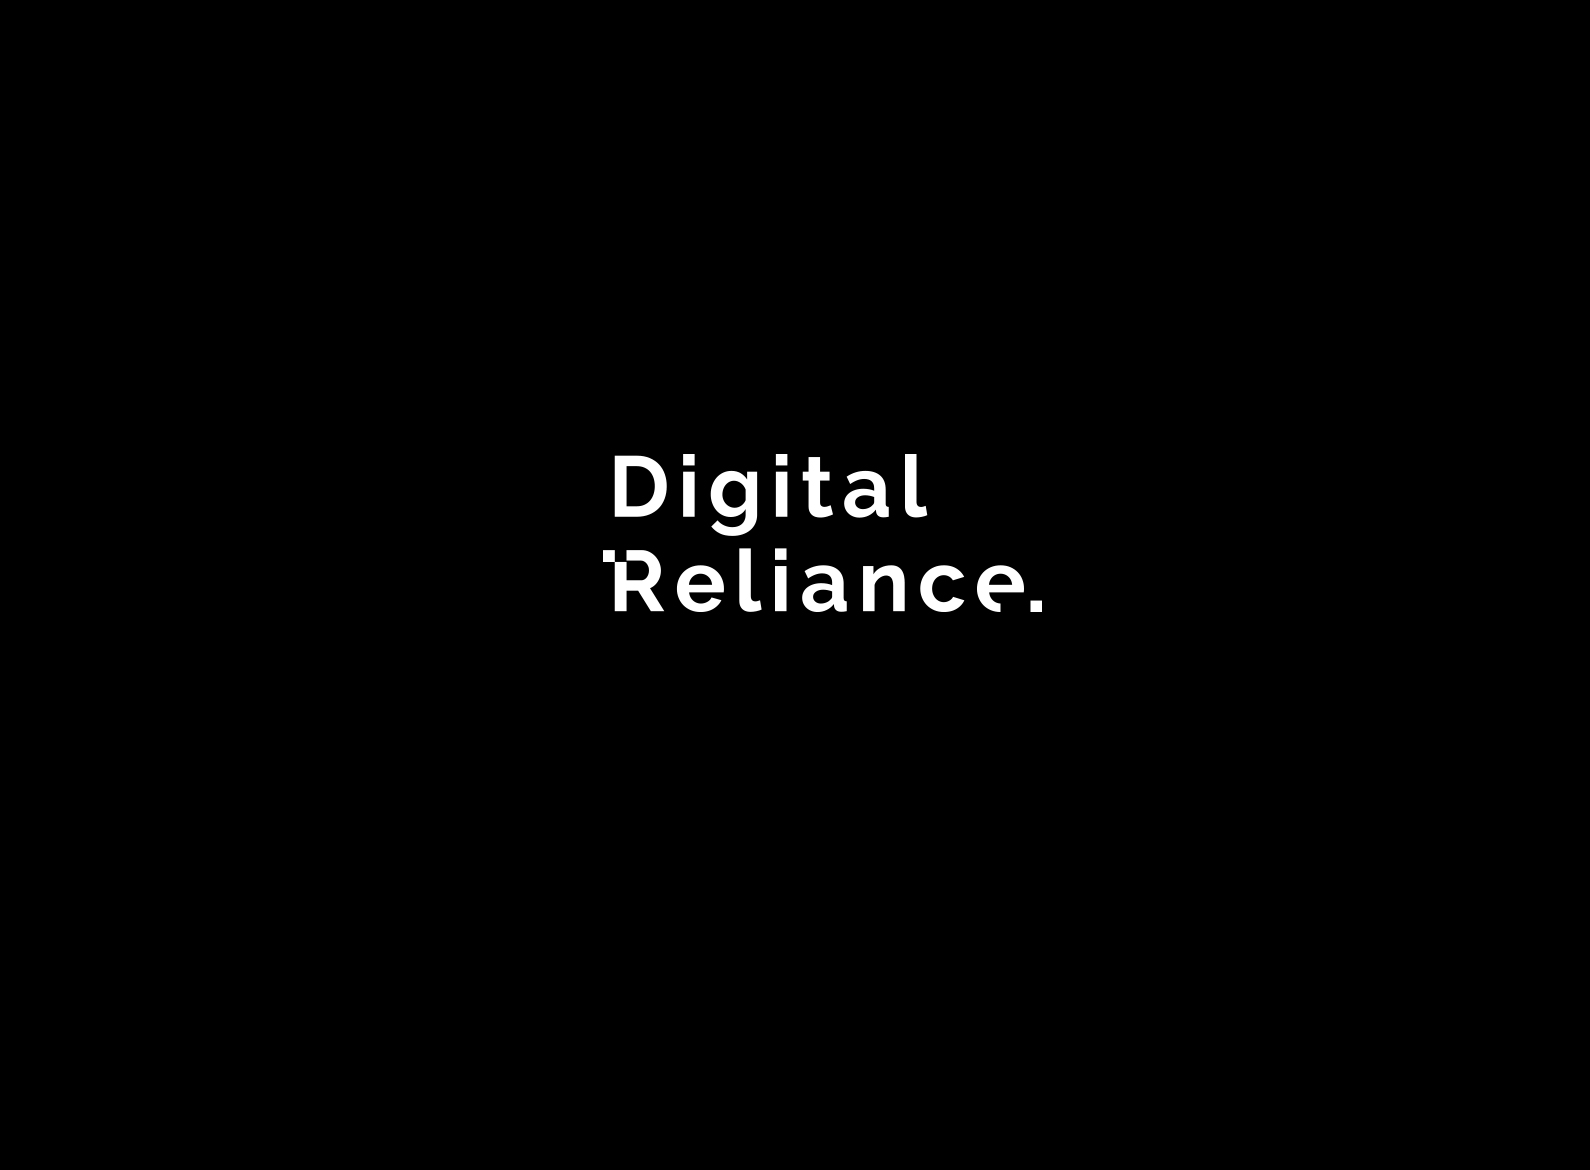 digital_reliance_case_02